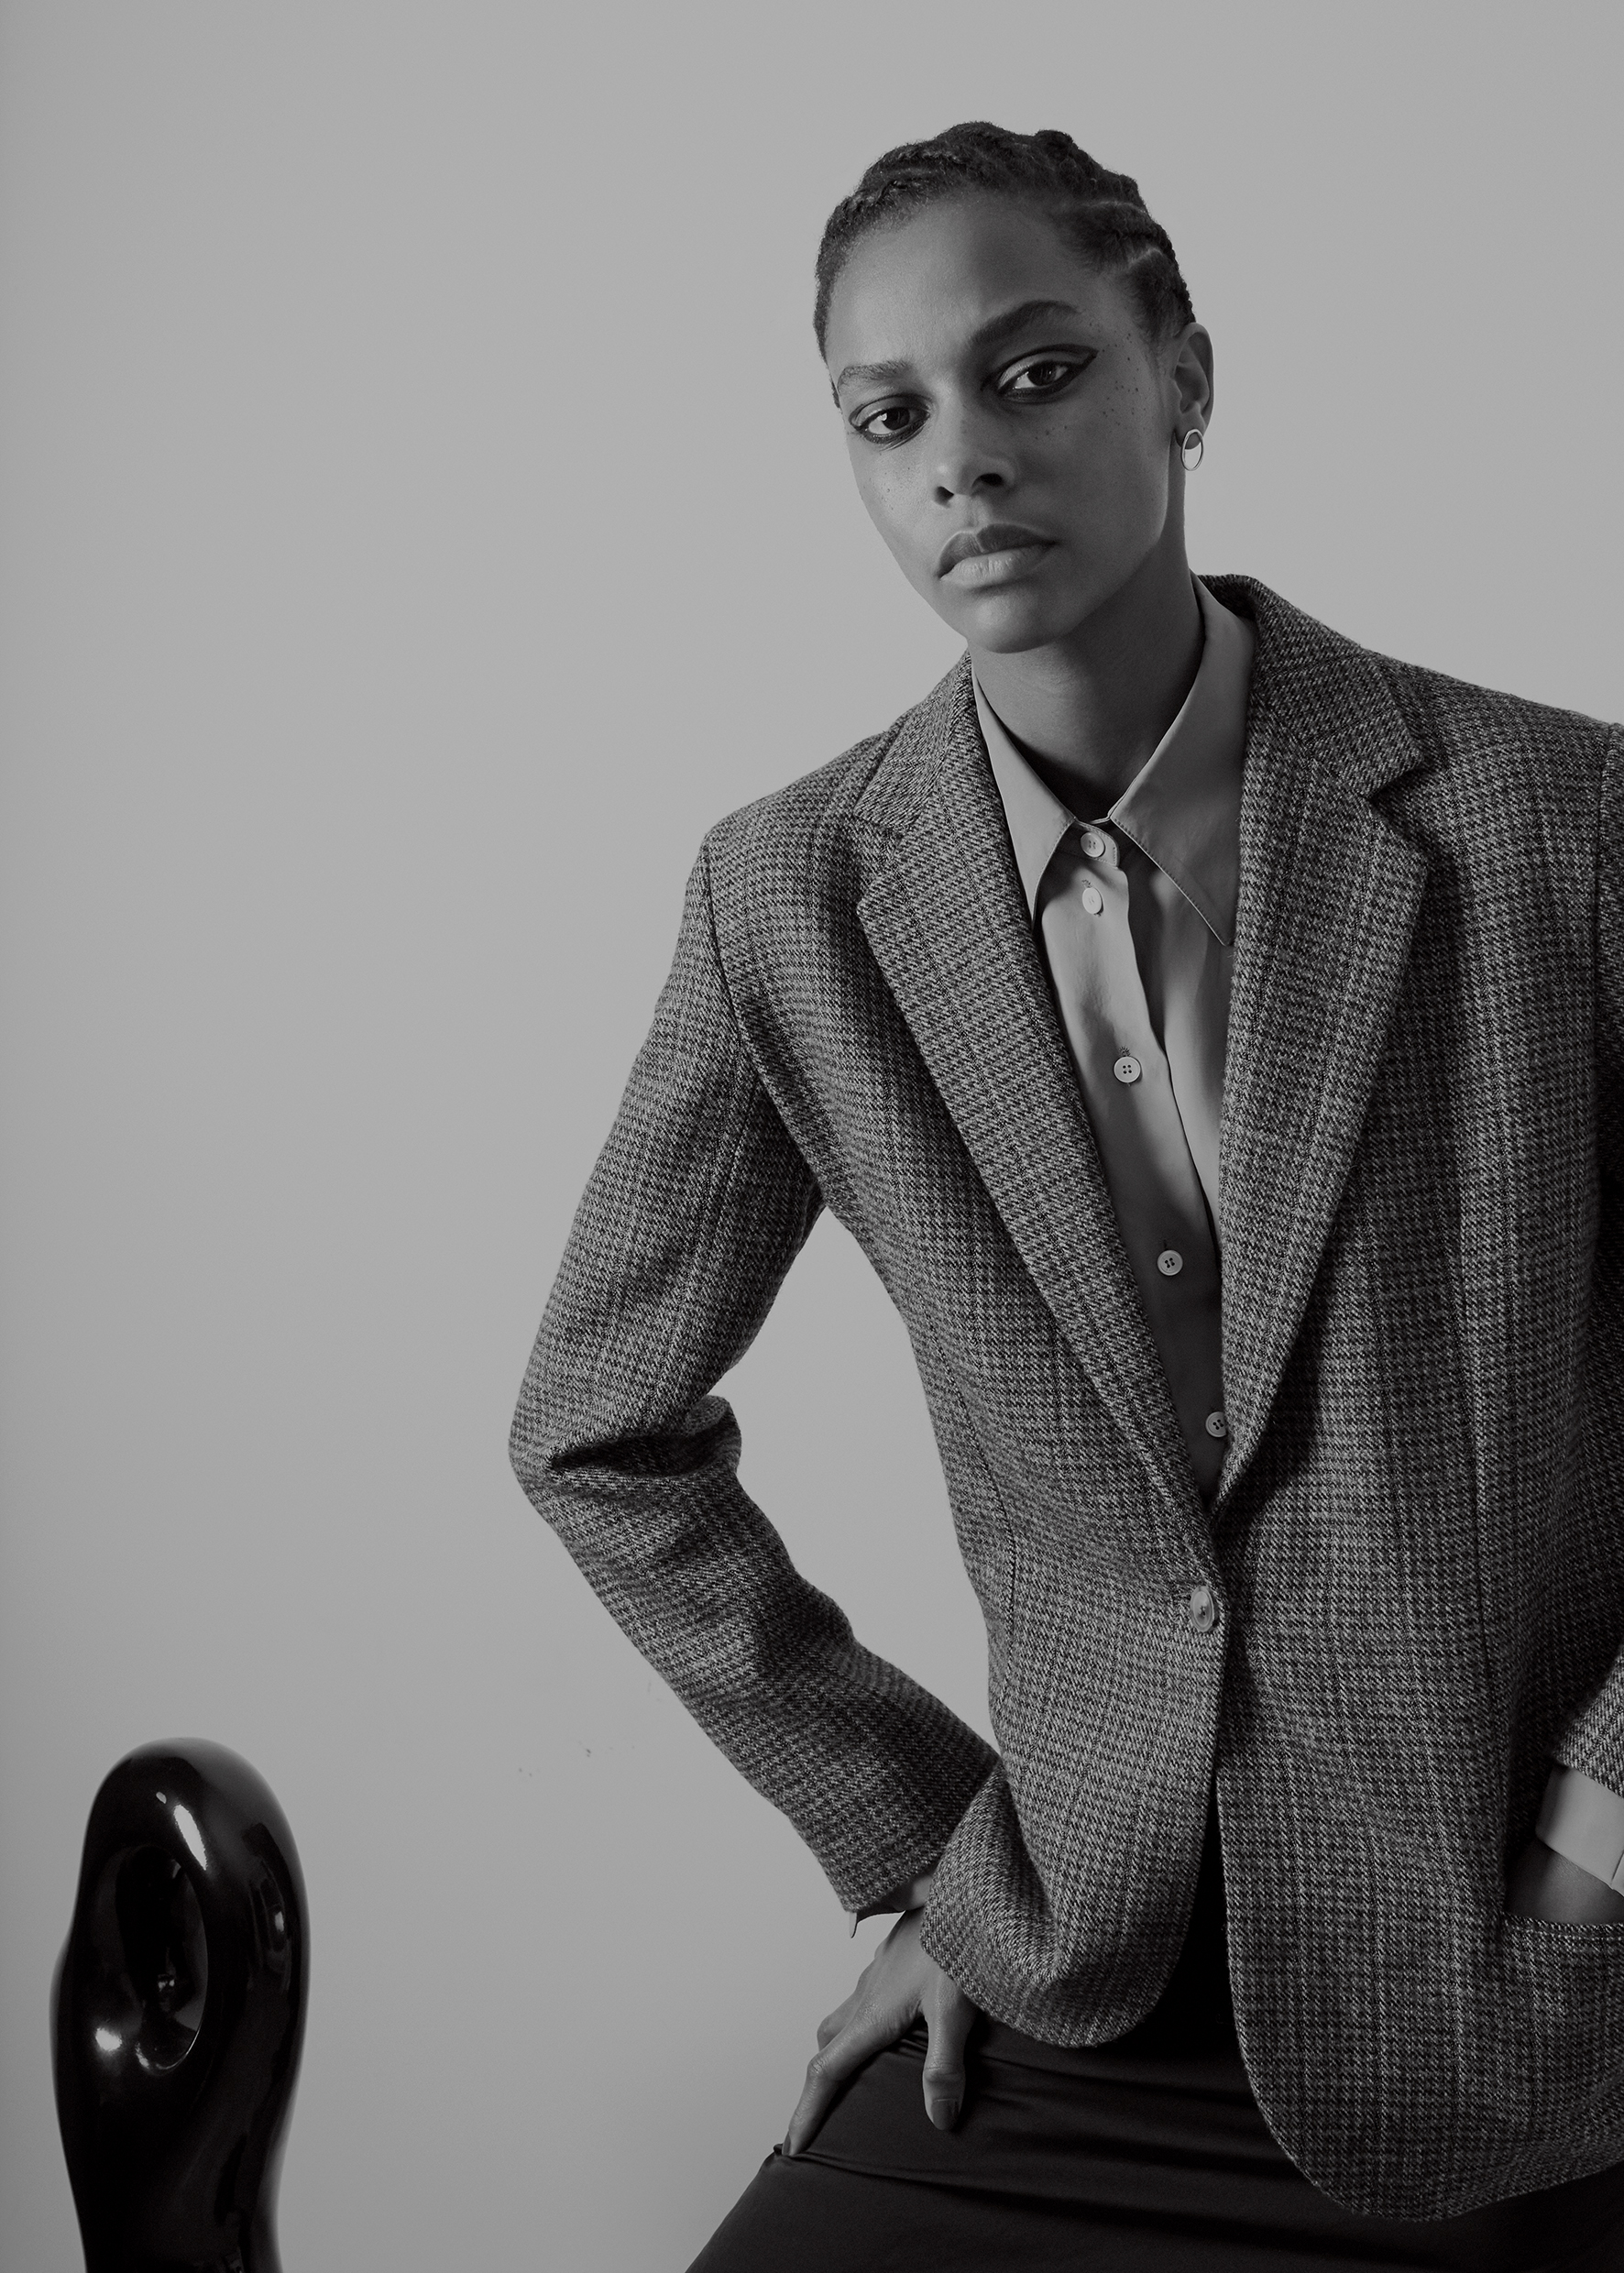 Oversize twill shirt CÉLINE, wool tweed checkered jacket HOLLAND & HOLLAND, golden earring COMPLETEDWORKS.